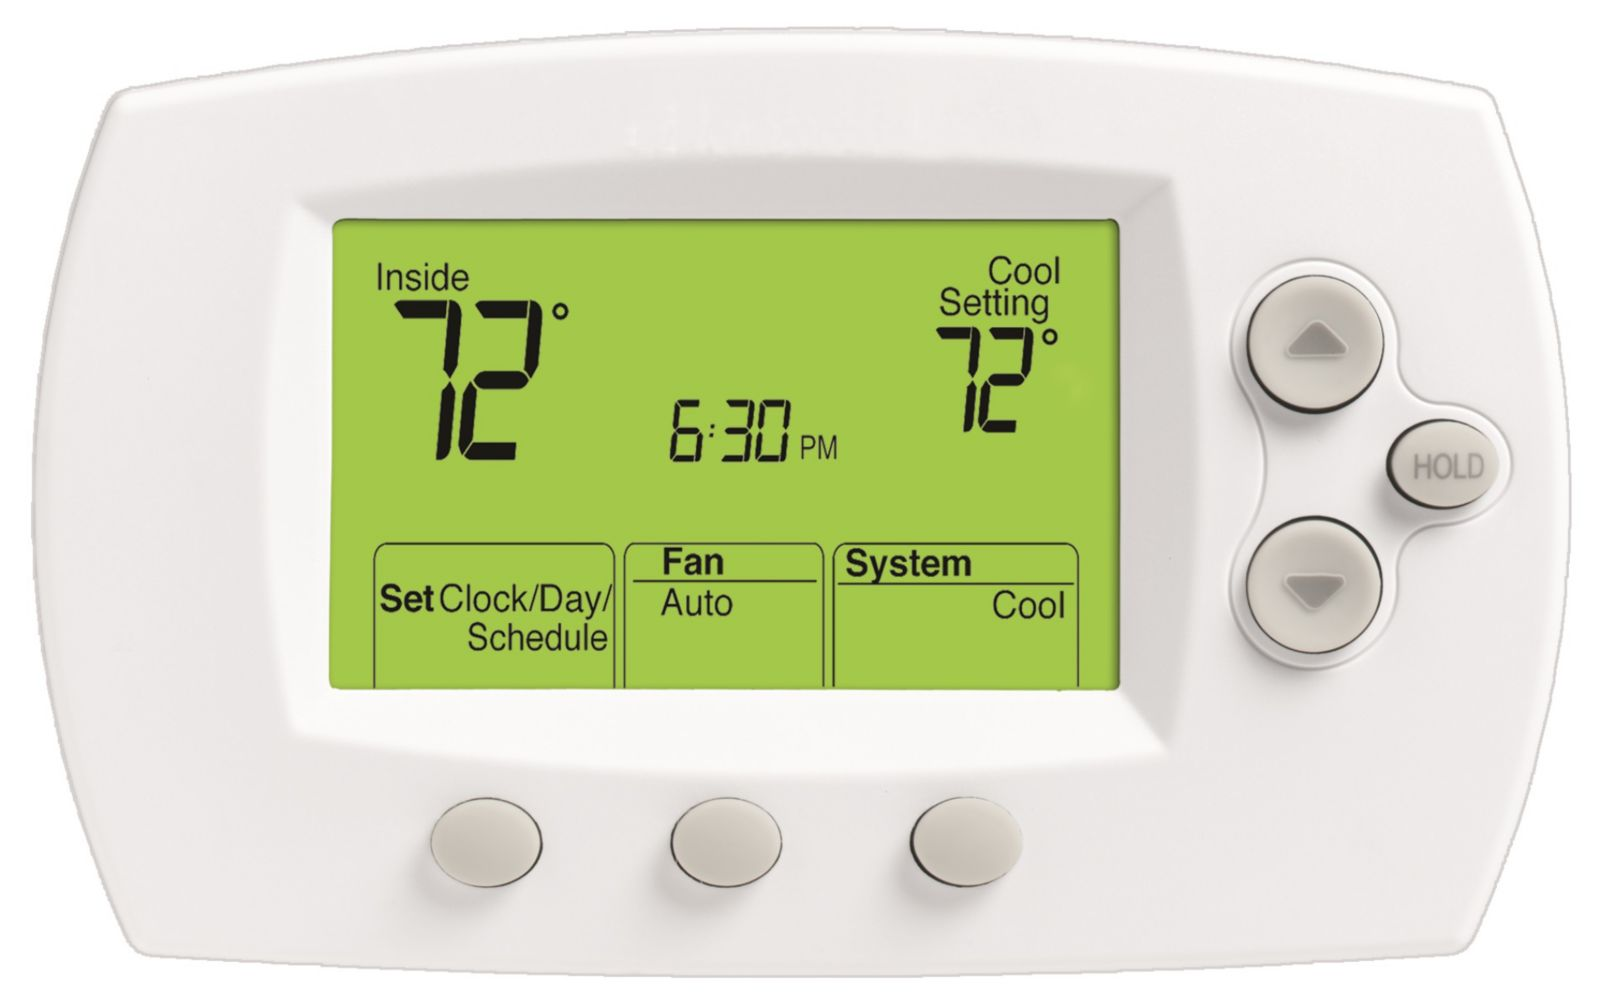 Honeywell - TH6110D1005 Conventional And Heat Pump Programmable Thermostat  1H/1C